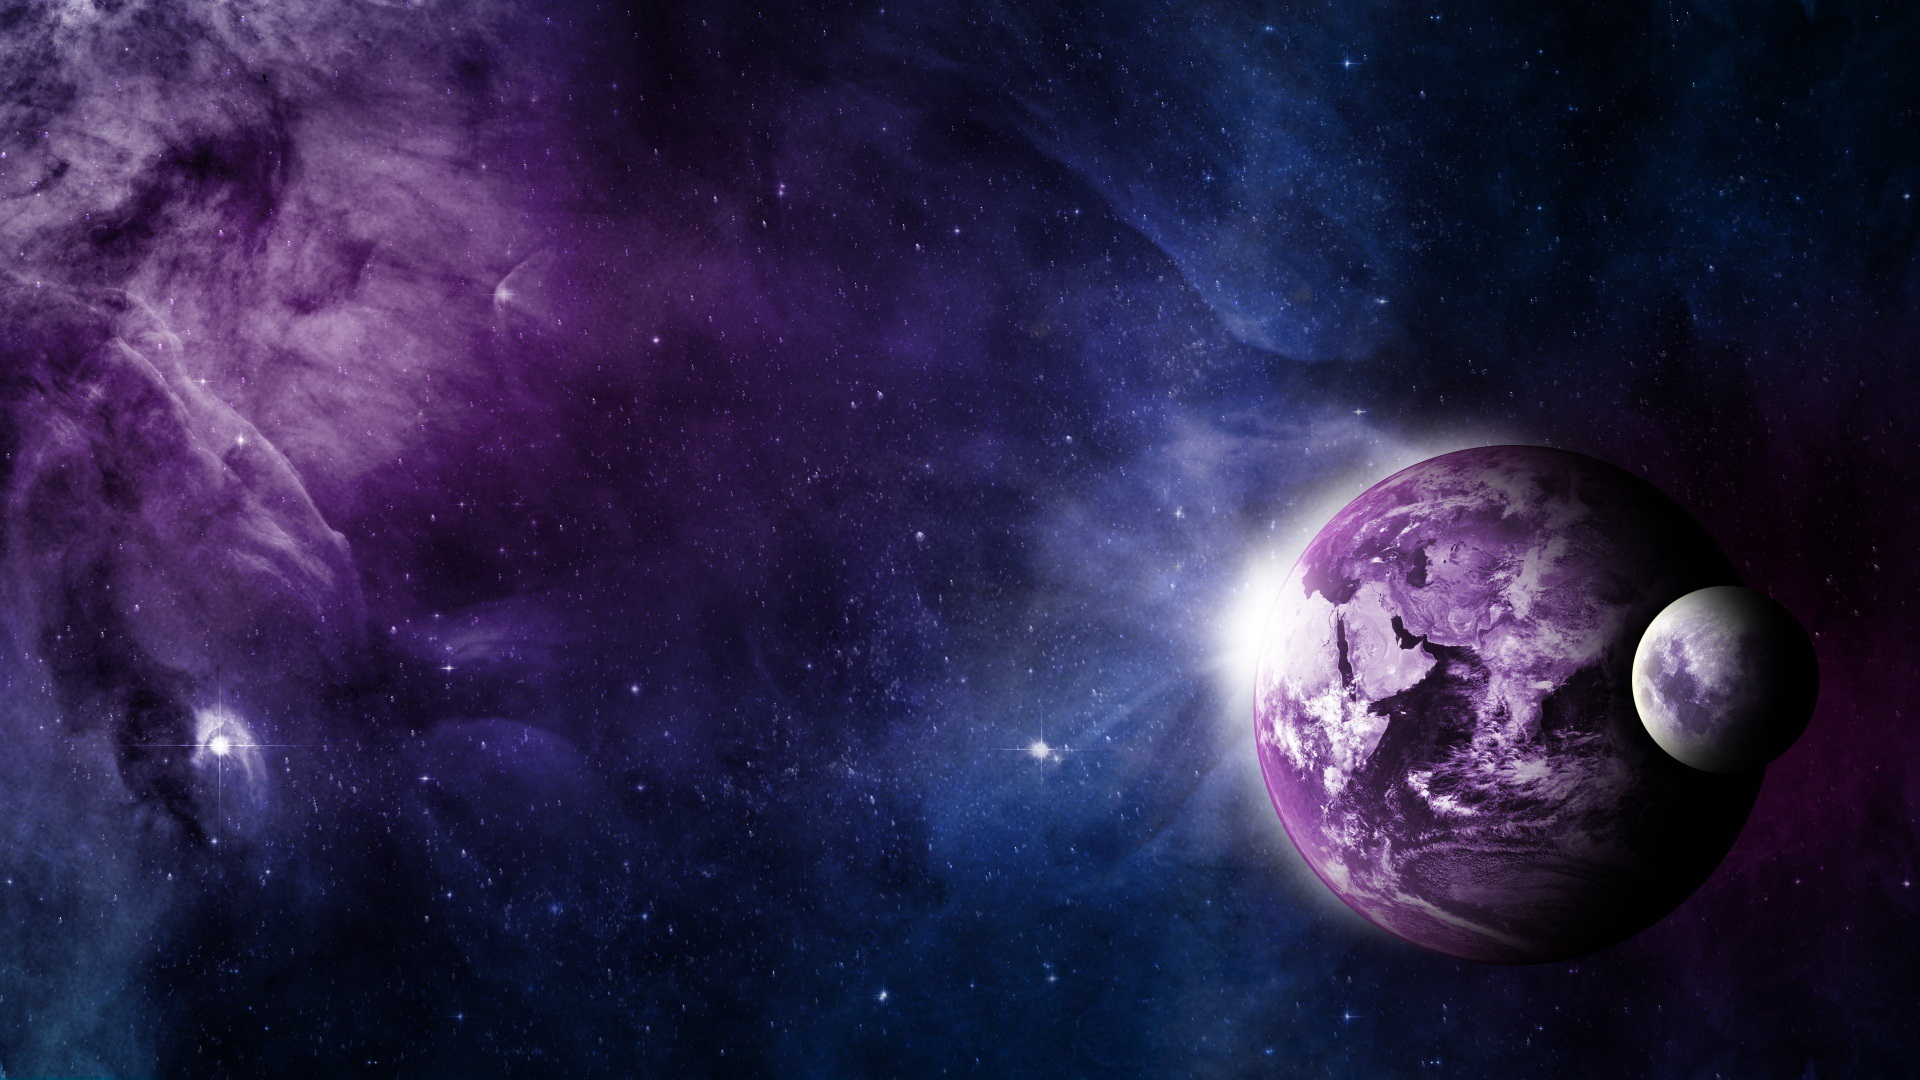 Wallpaper Galaxy Stars Earth Moon Space 1920x1080 Full